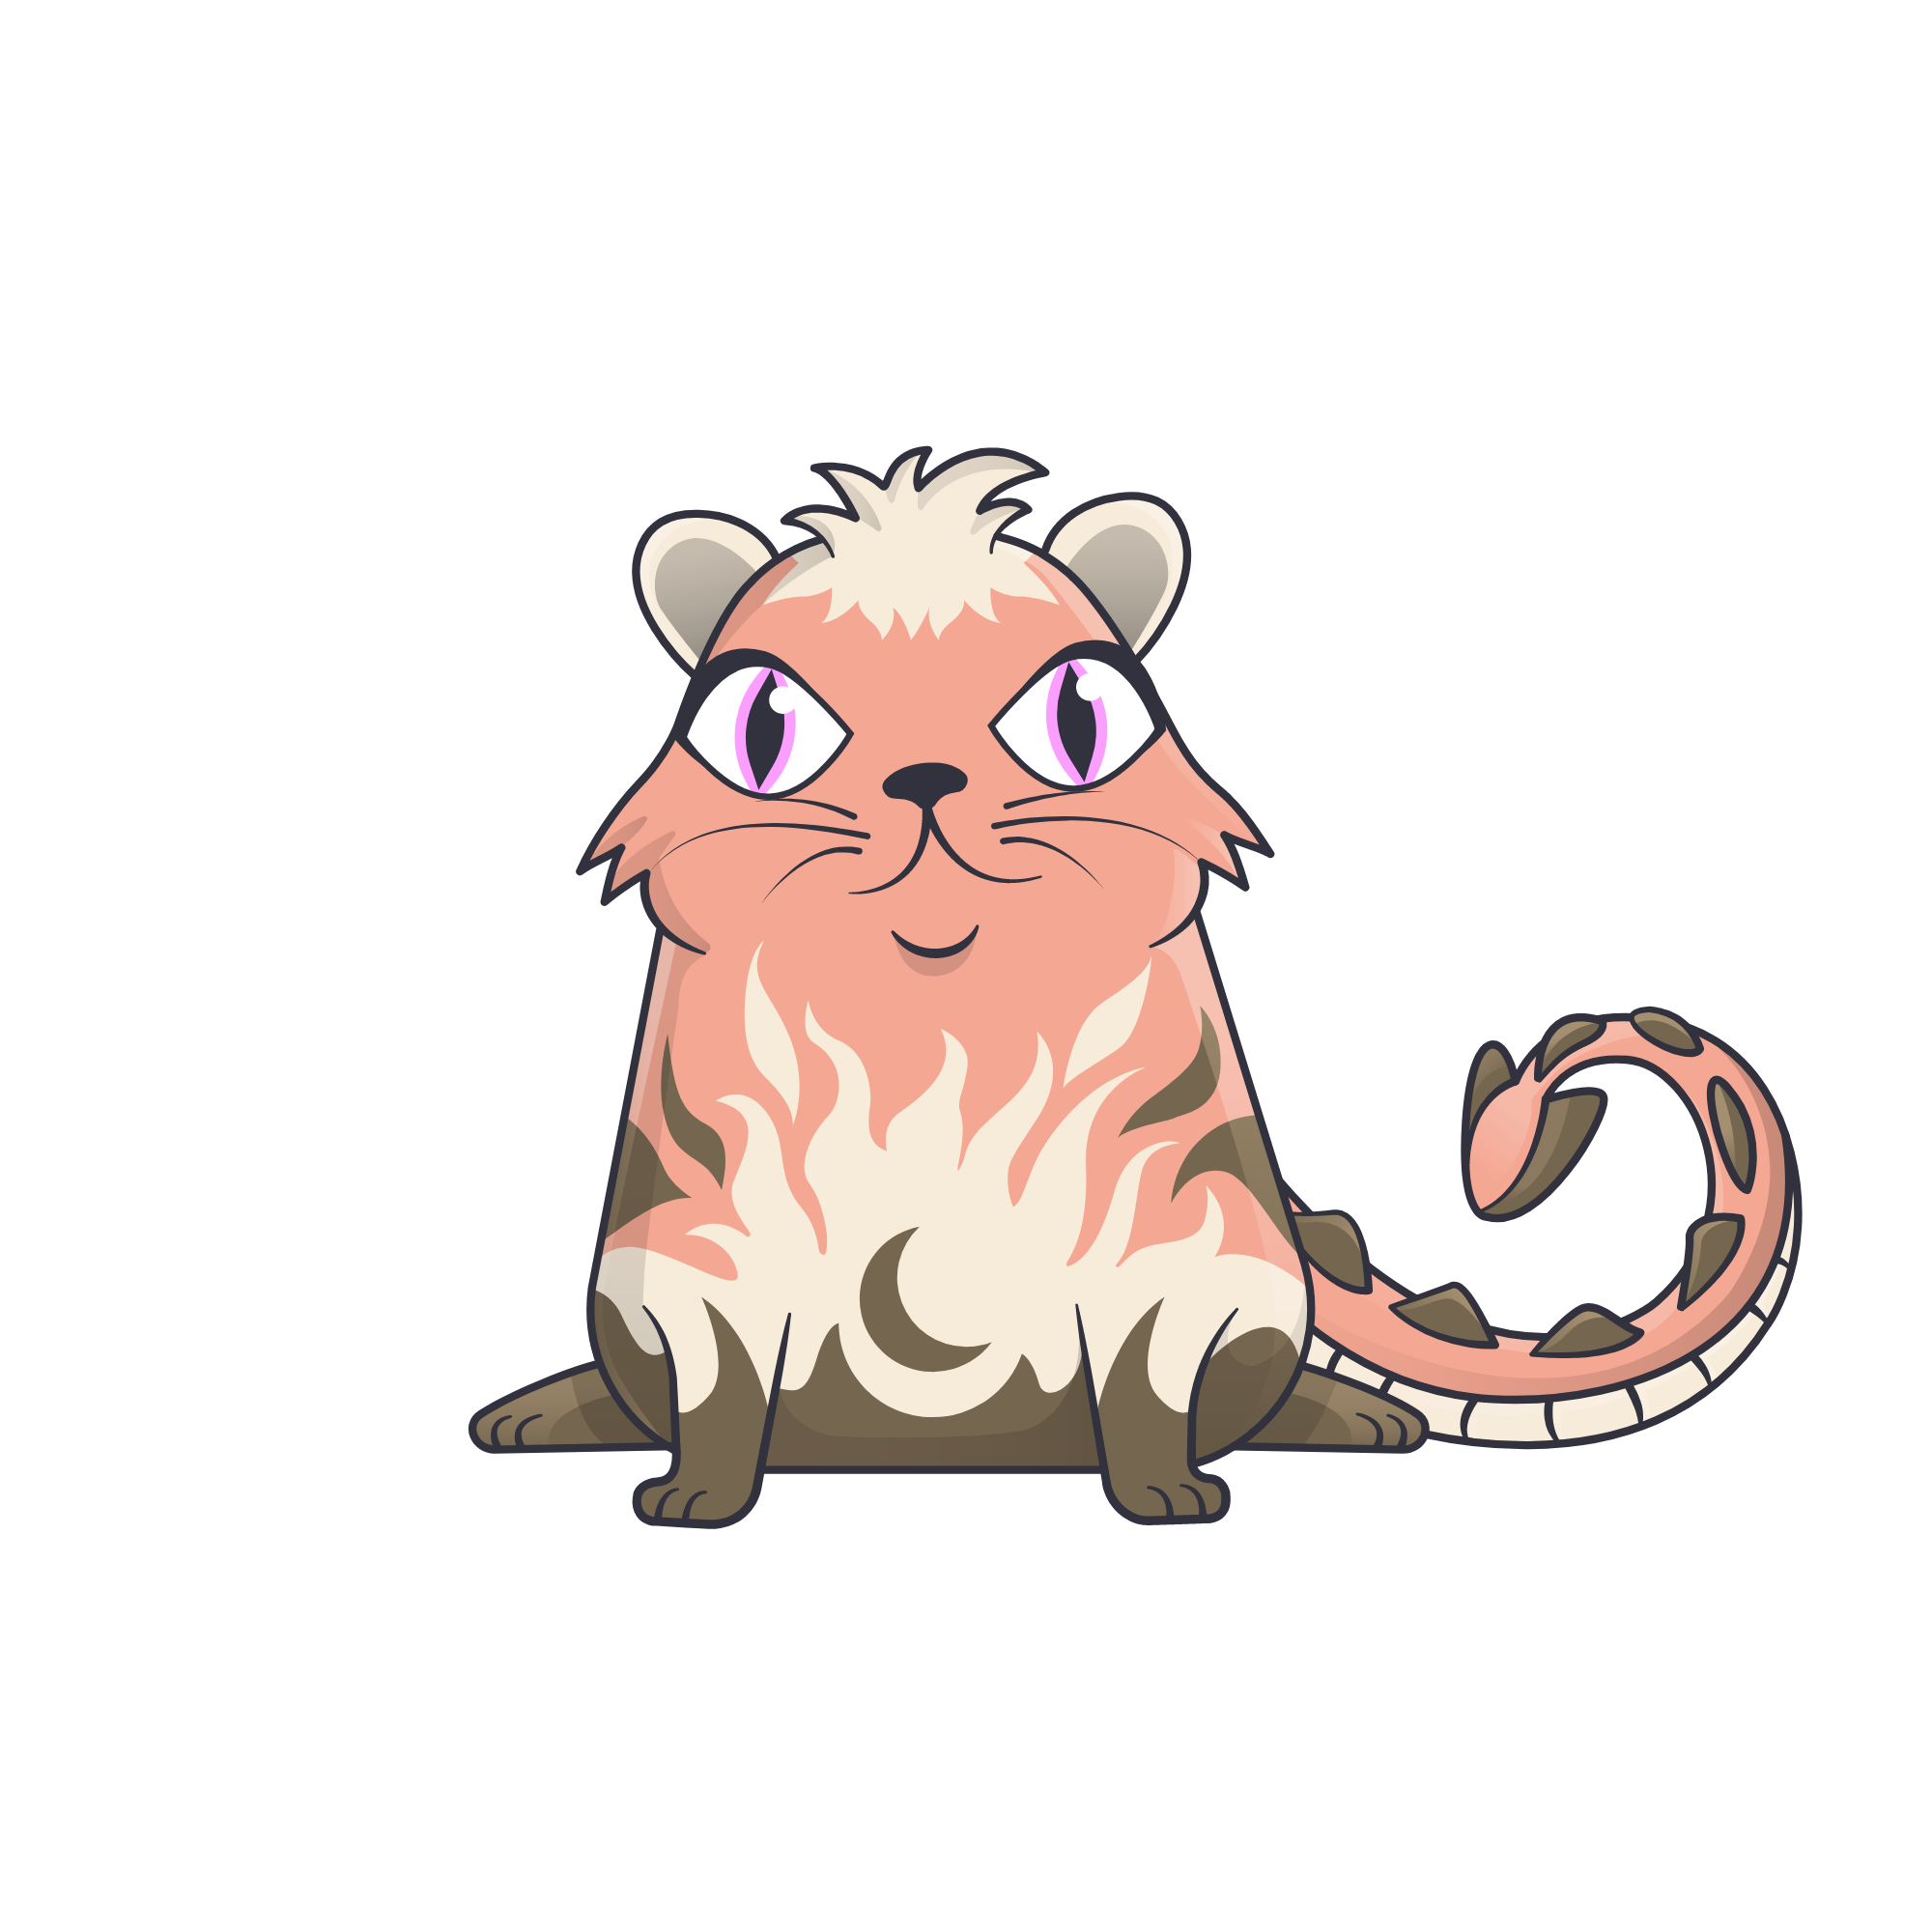 cryptokitty #1630590